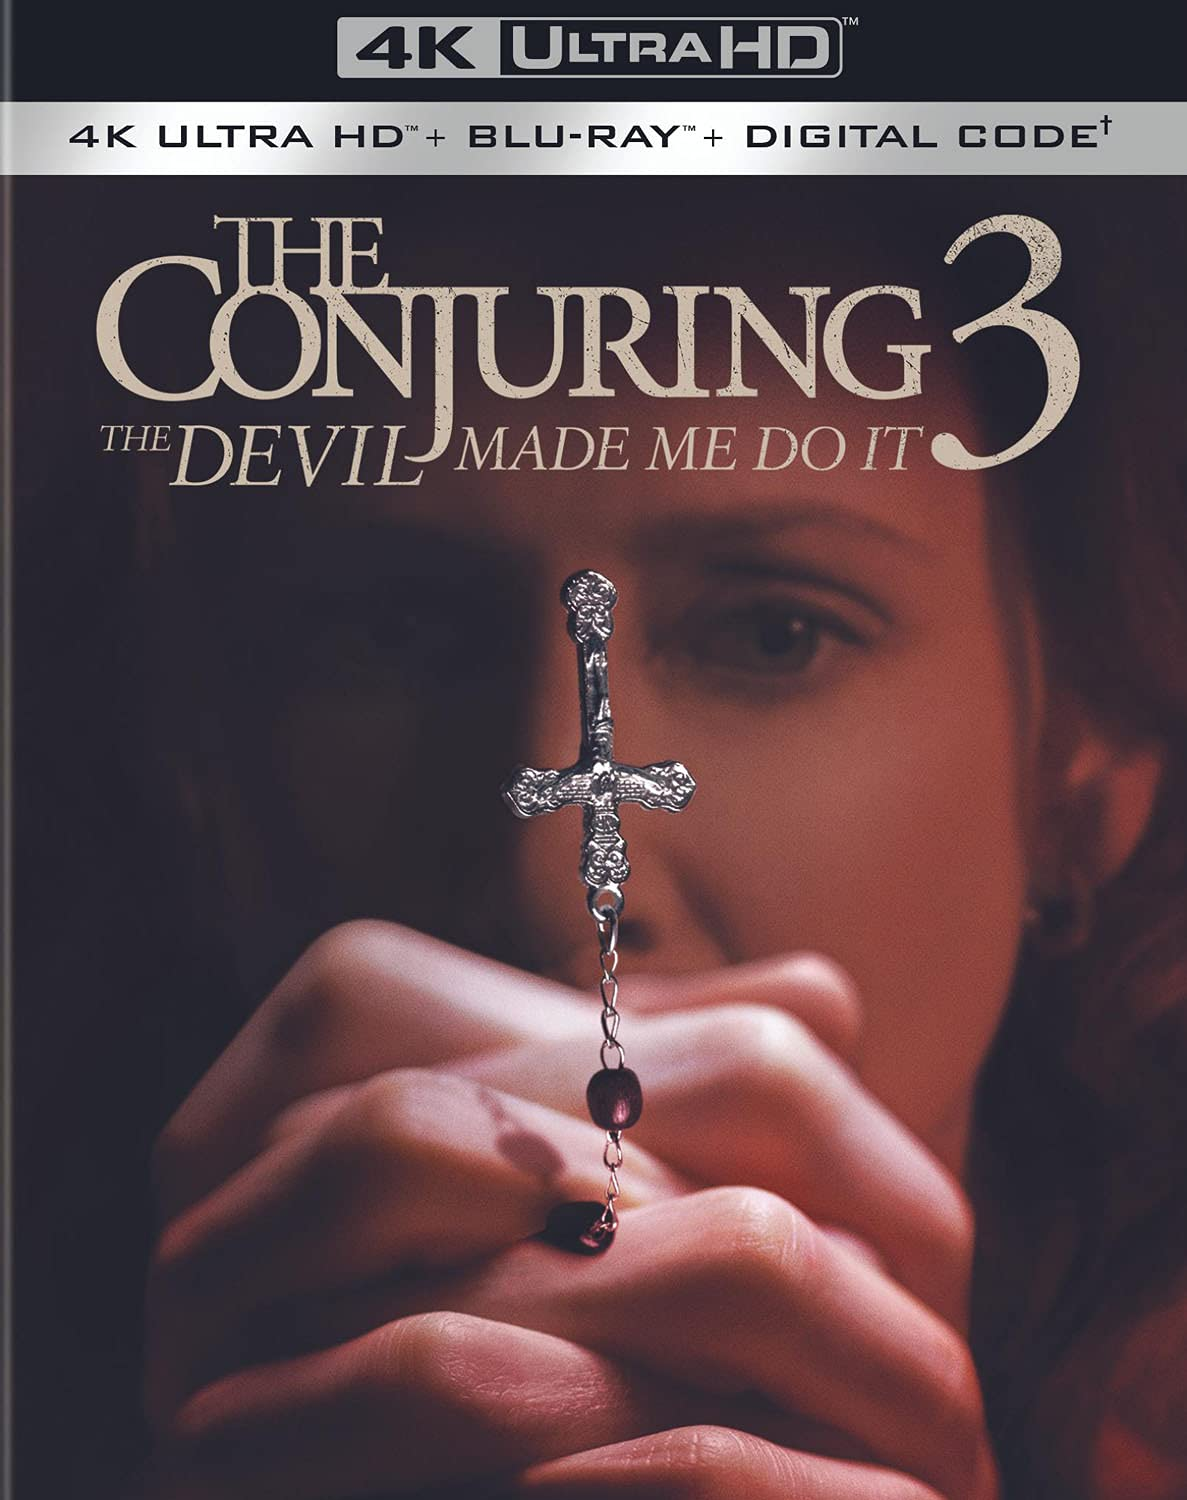 The Conjuring- The Devil Made Me Do It 4k Blu-ray